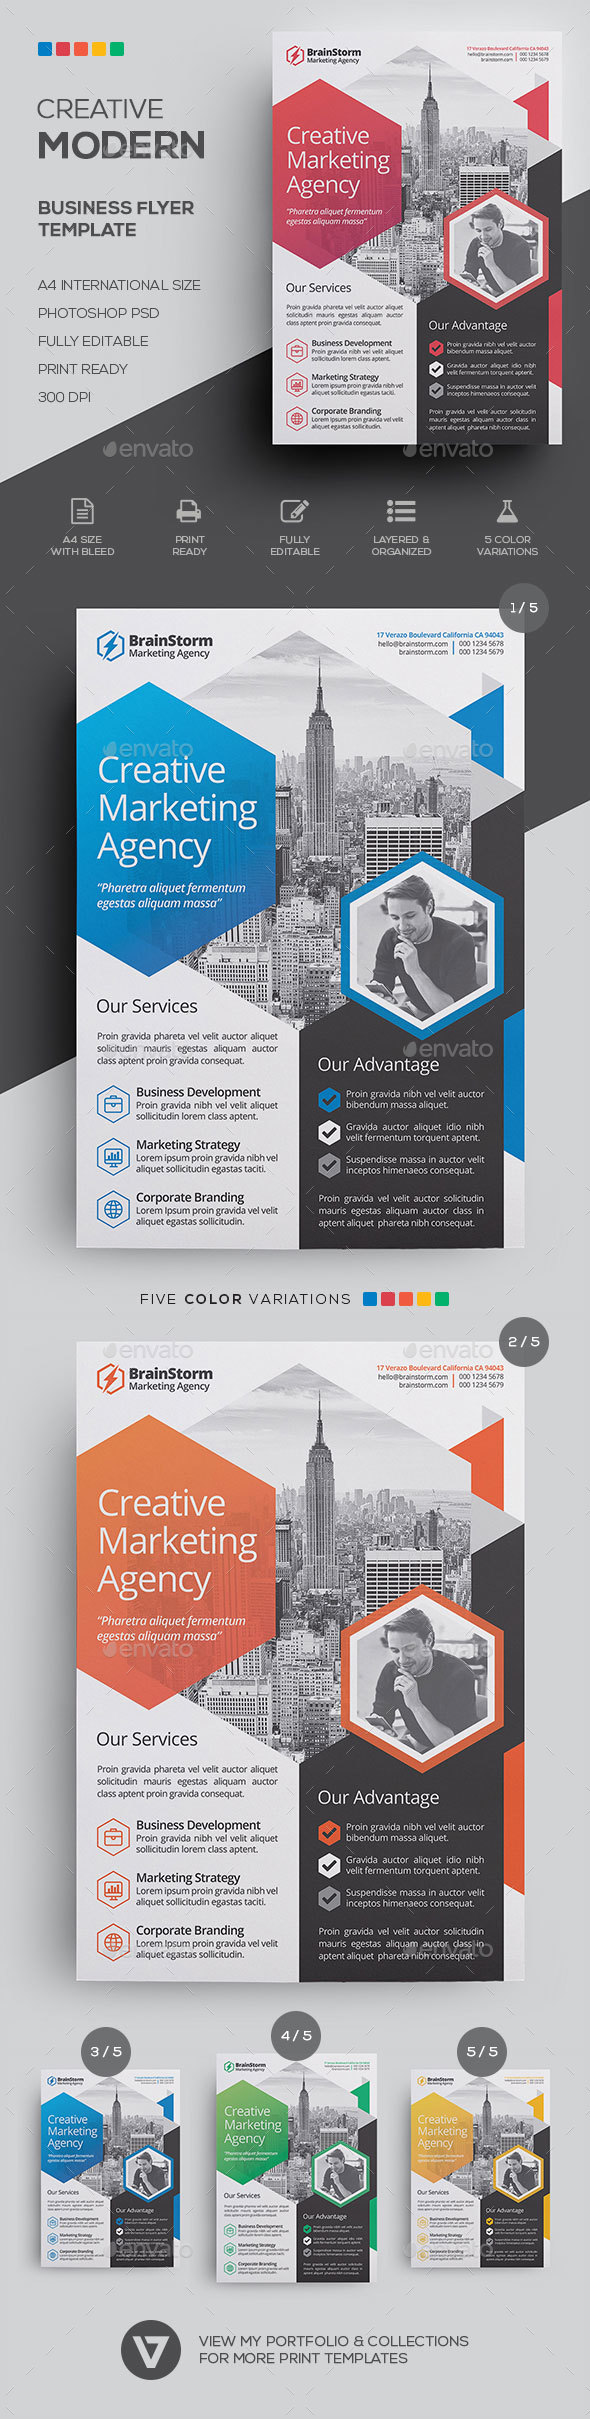 Business flyer template by verazo graphicriver business flyer template corporate flyers wajeb Image collections